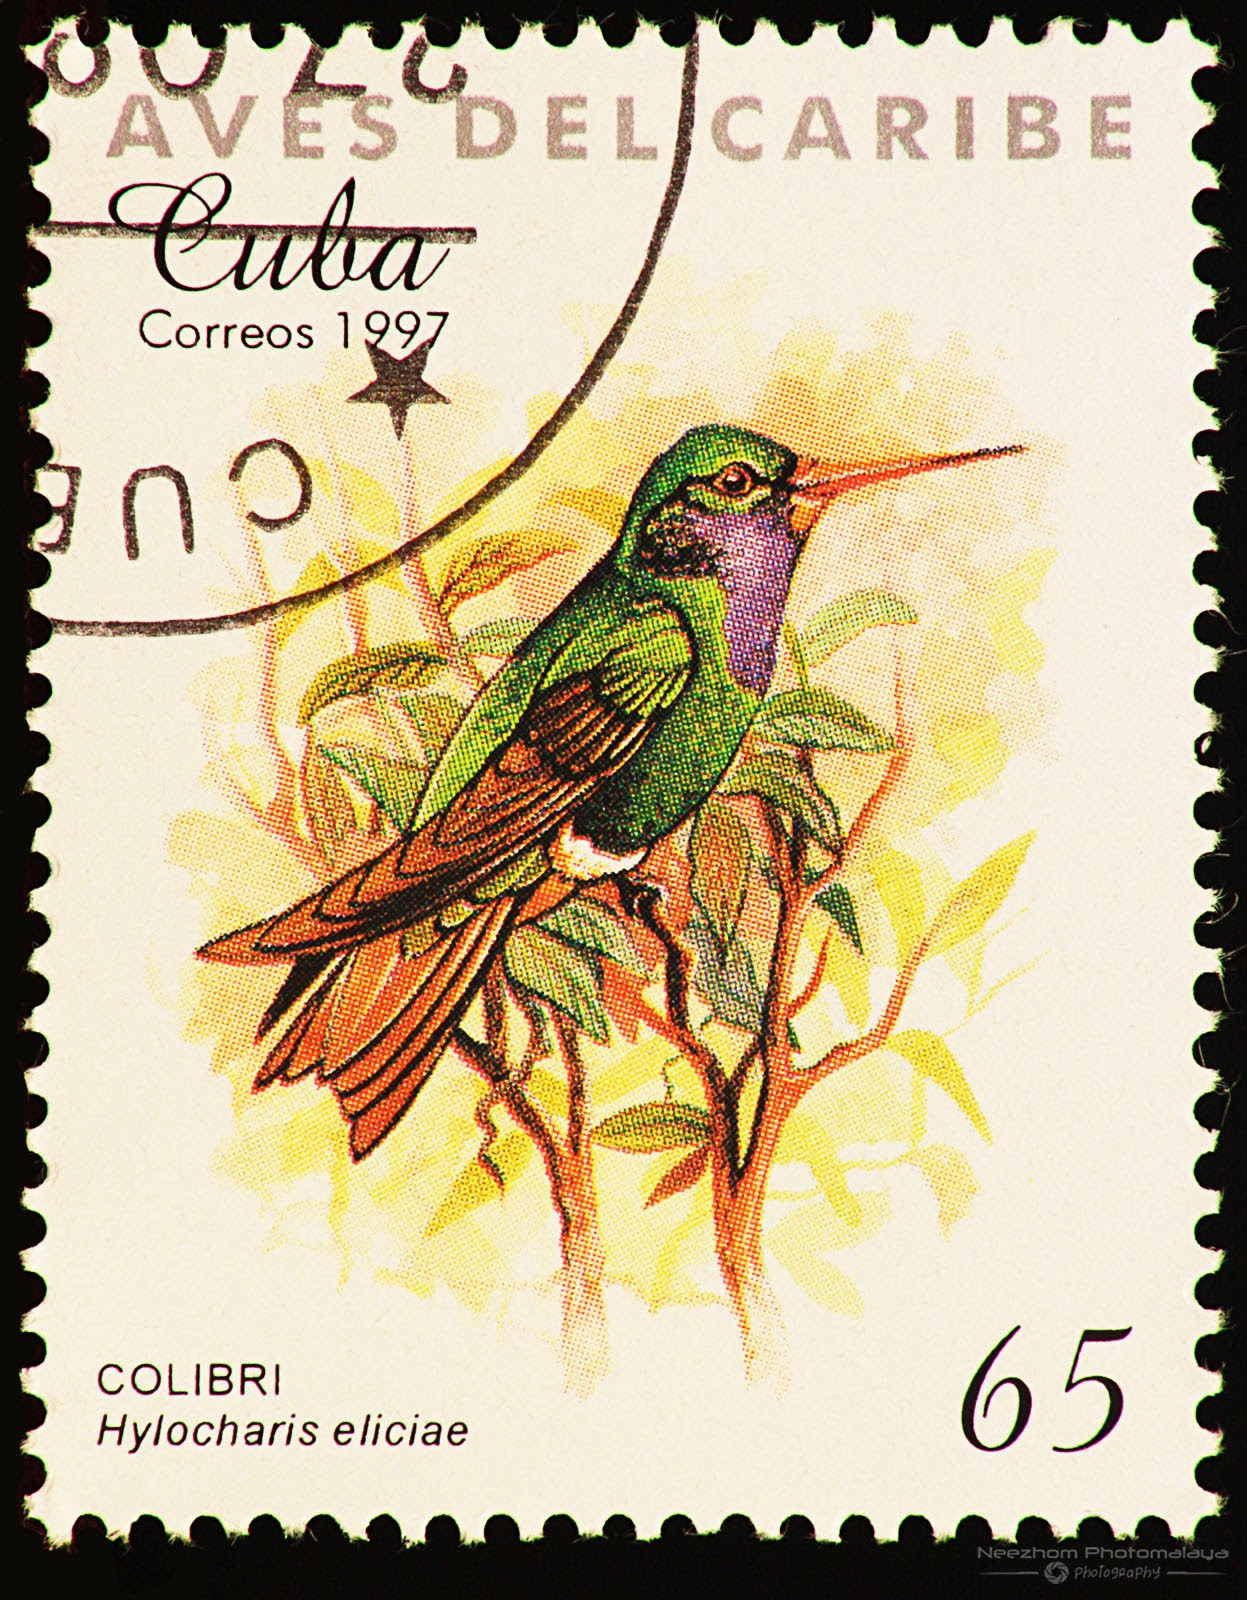 Cuba 1997 Birds of the Caribbean stamp - Blue-throated Sapphire (Hylocharis eliciae) 65 c